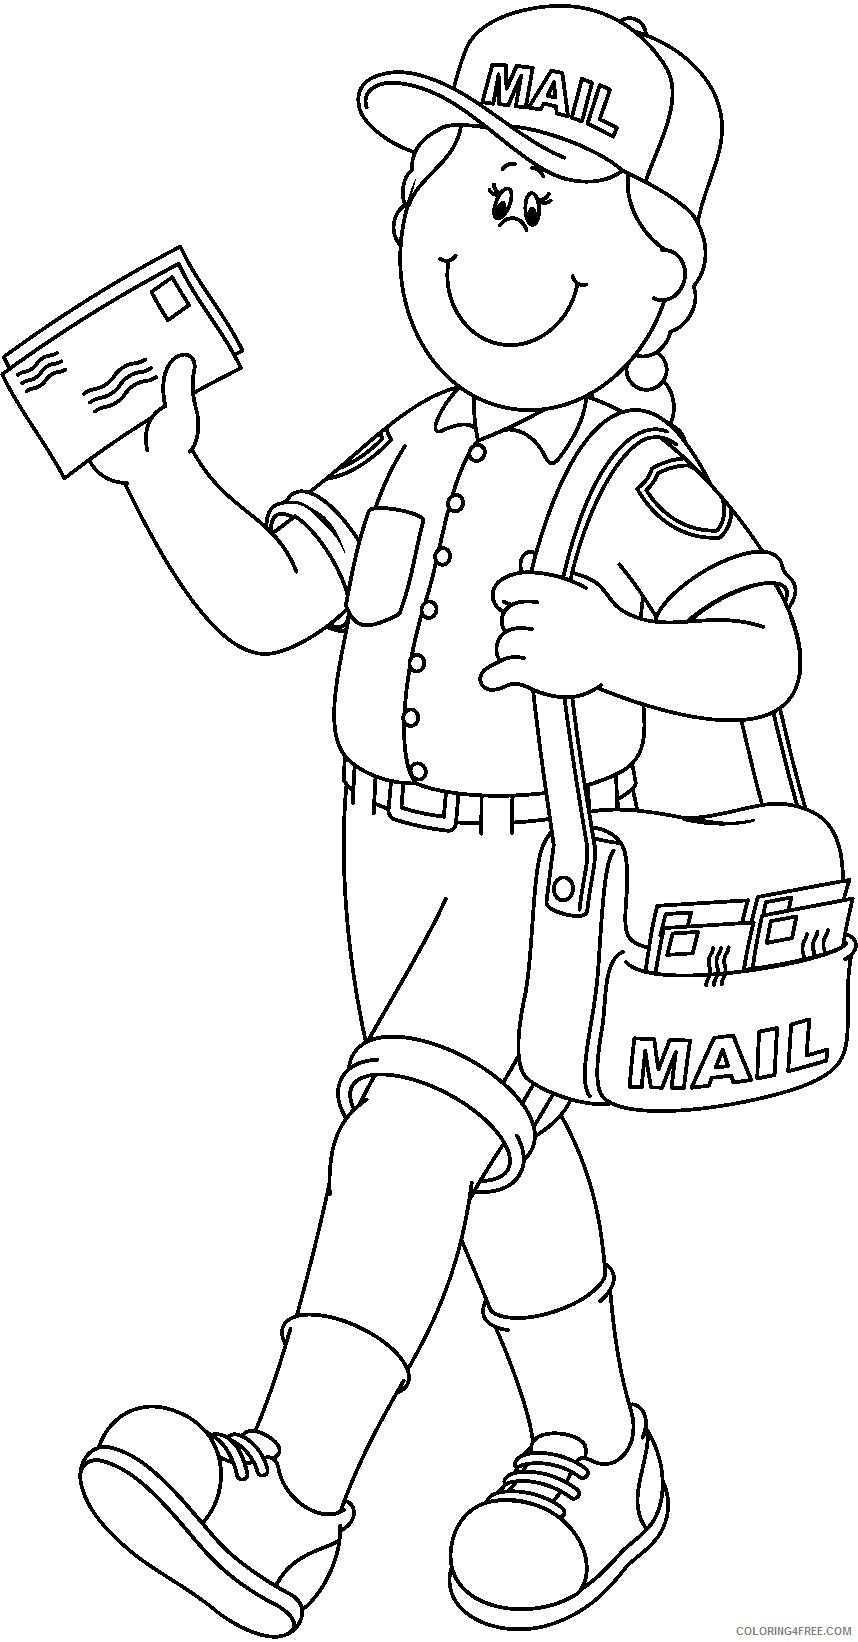 postman community helpers coloring pages Coloring4free